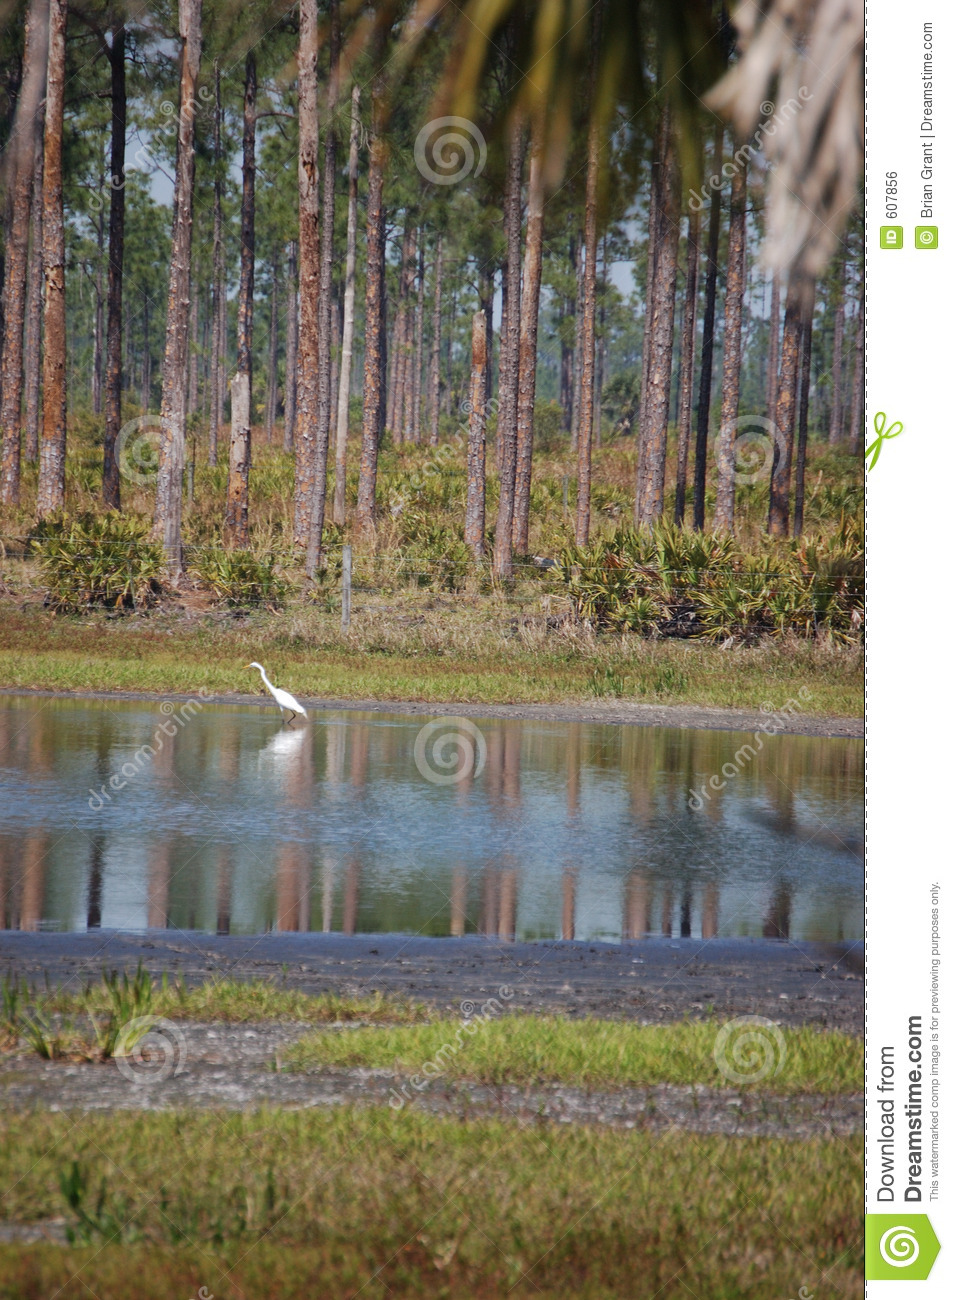 Pond fishing royalty free stock image image 607856 for Stocked fishing ponds near me